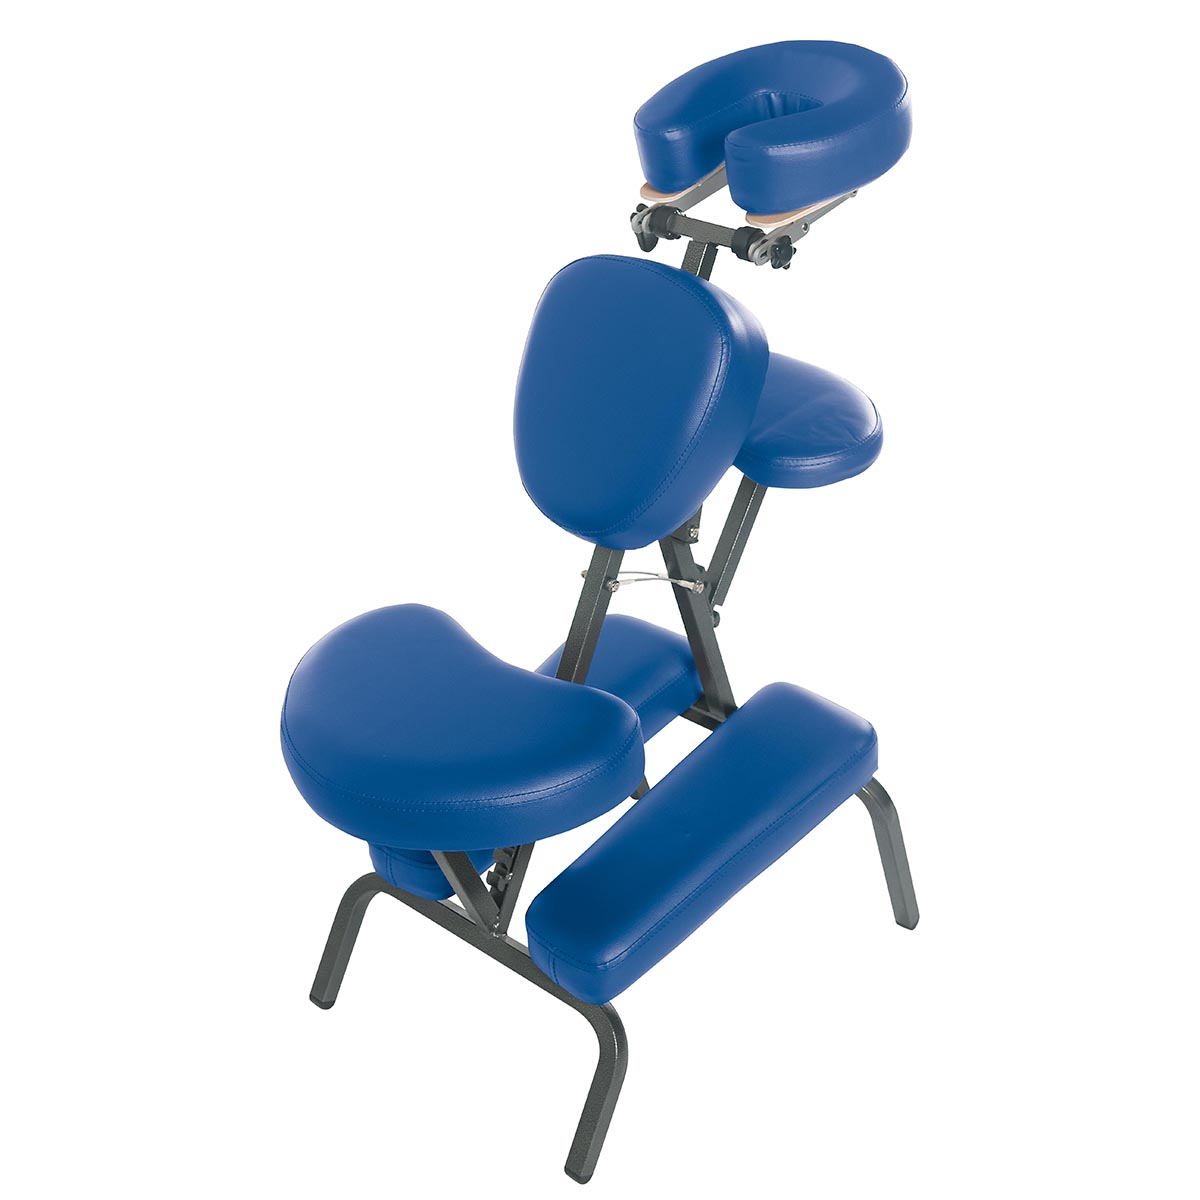 Chair massage therapy - Pro Massage Chair Massage Furniture Portable Massage Chair